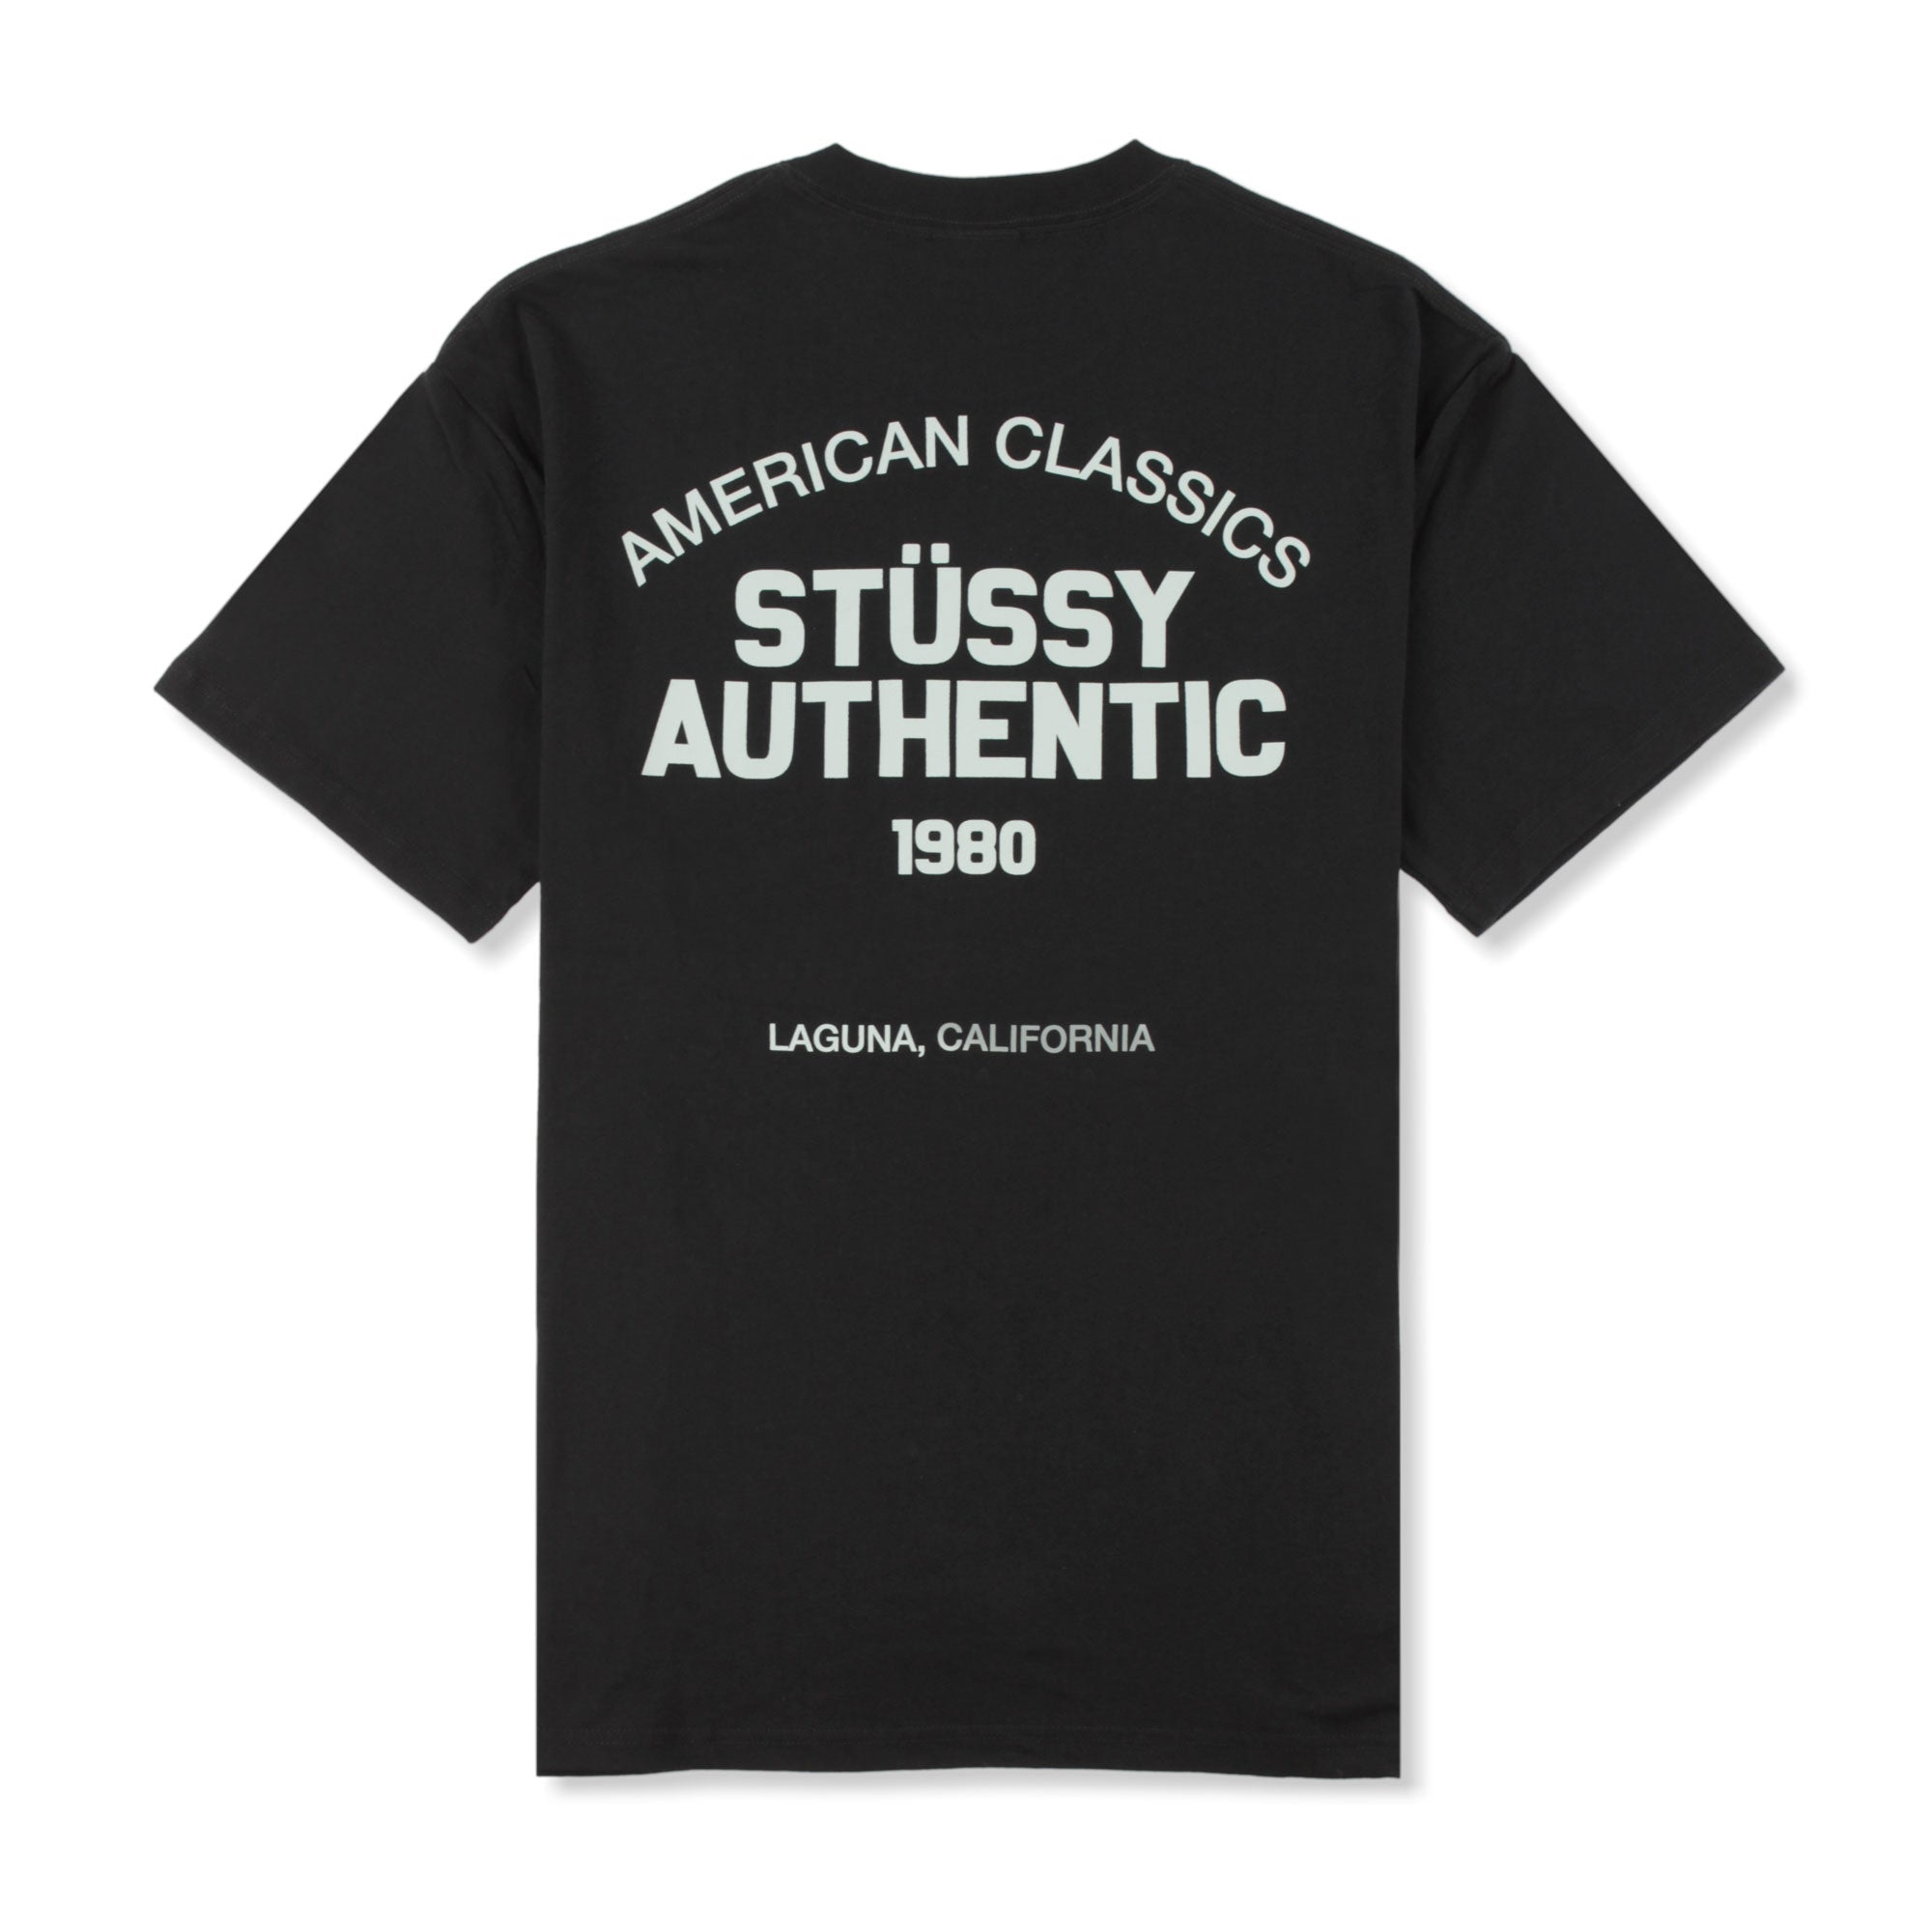 Stussy Authentic Tee Product Photo #2